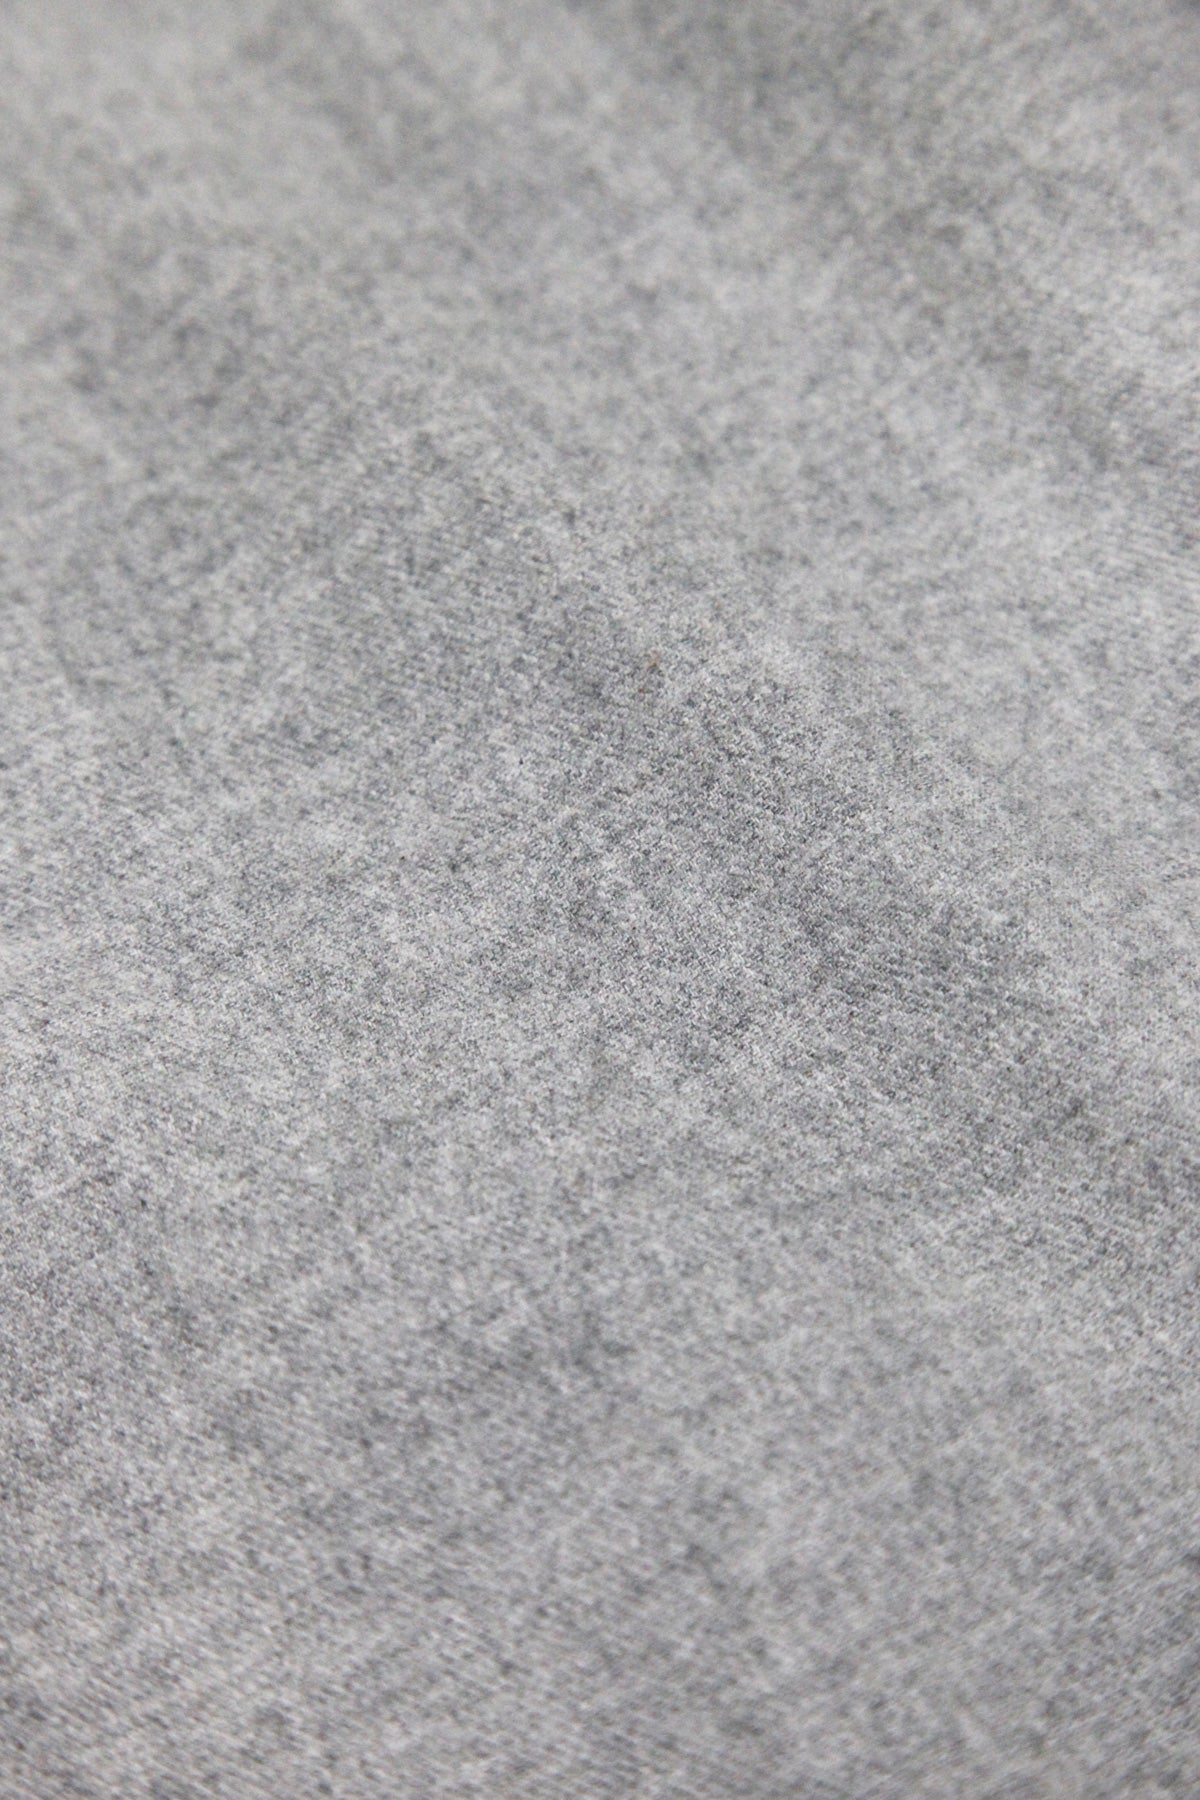 Engineered Garments - Work Shirt - Light Grey Brushed Cotton Twill - Canoe Club